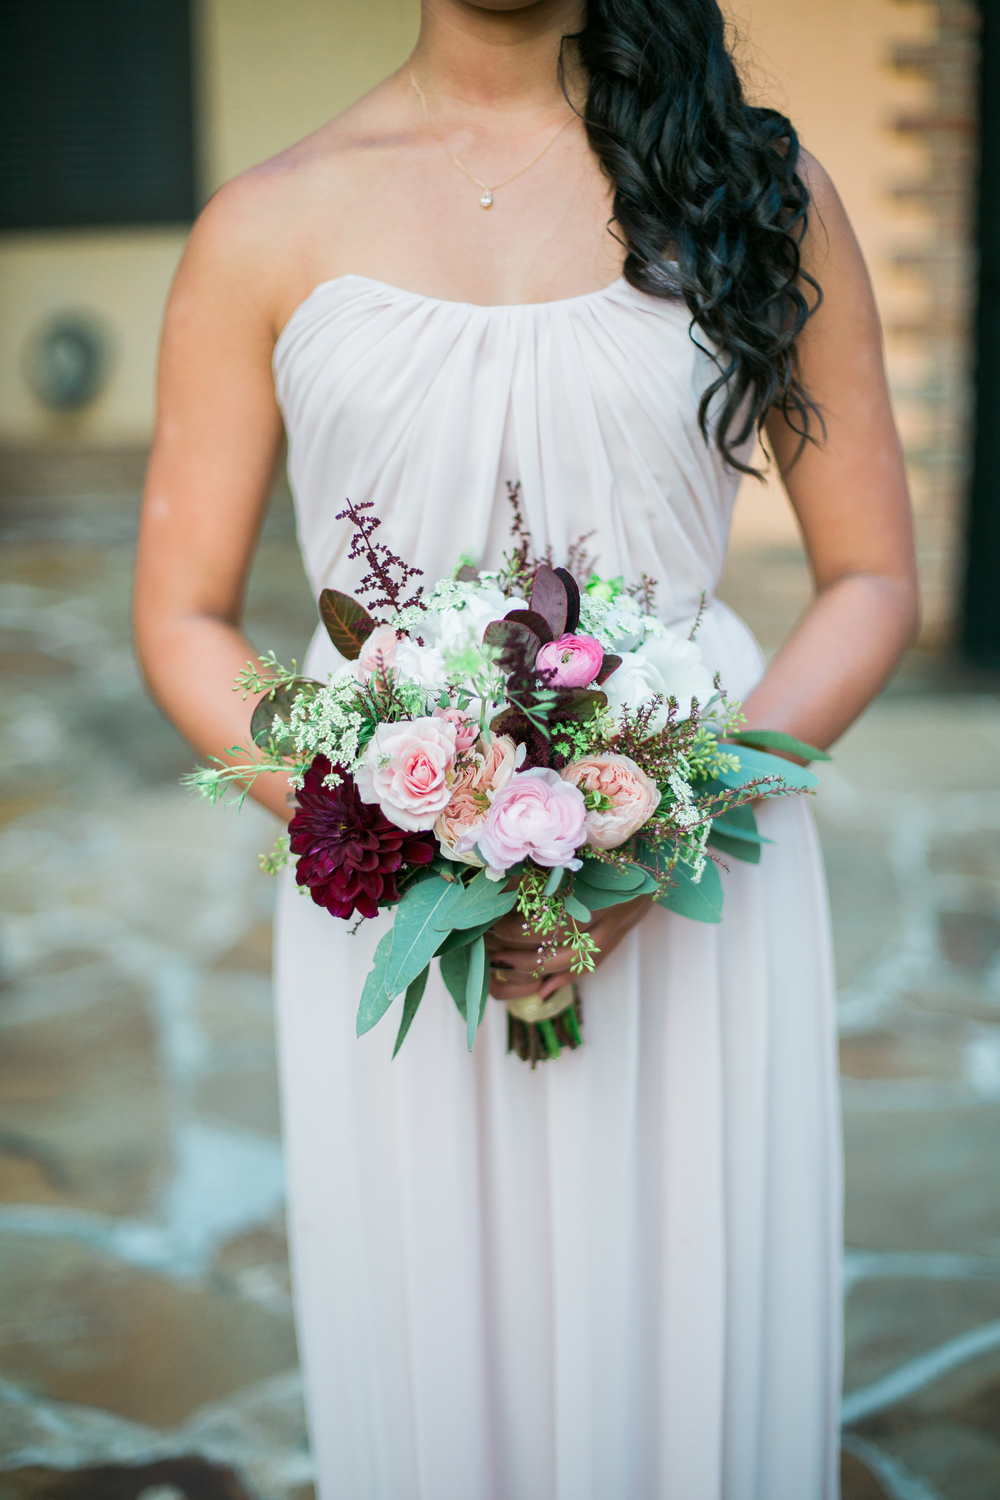 kristenweaver.com | Bella Collina Wedding in Montverde | Destination Wedding Photographer | Kristen Weaver Photography